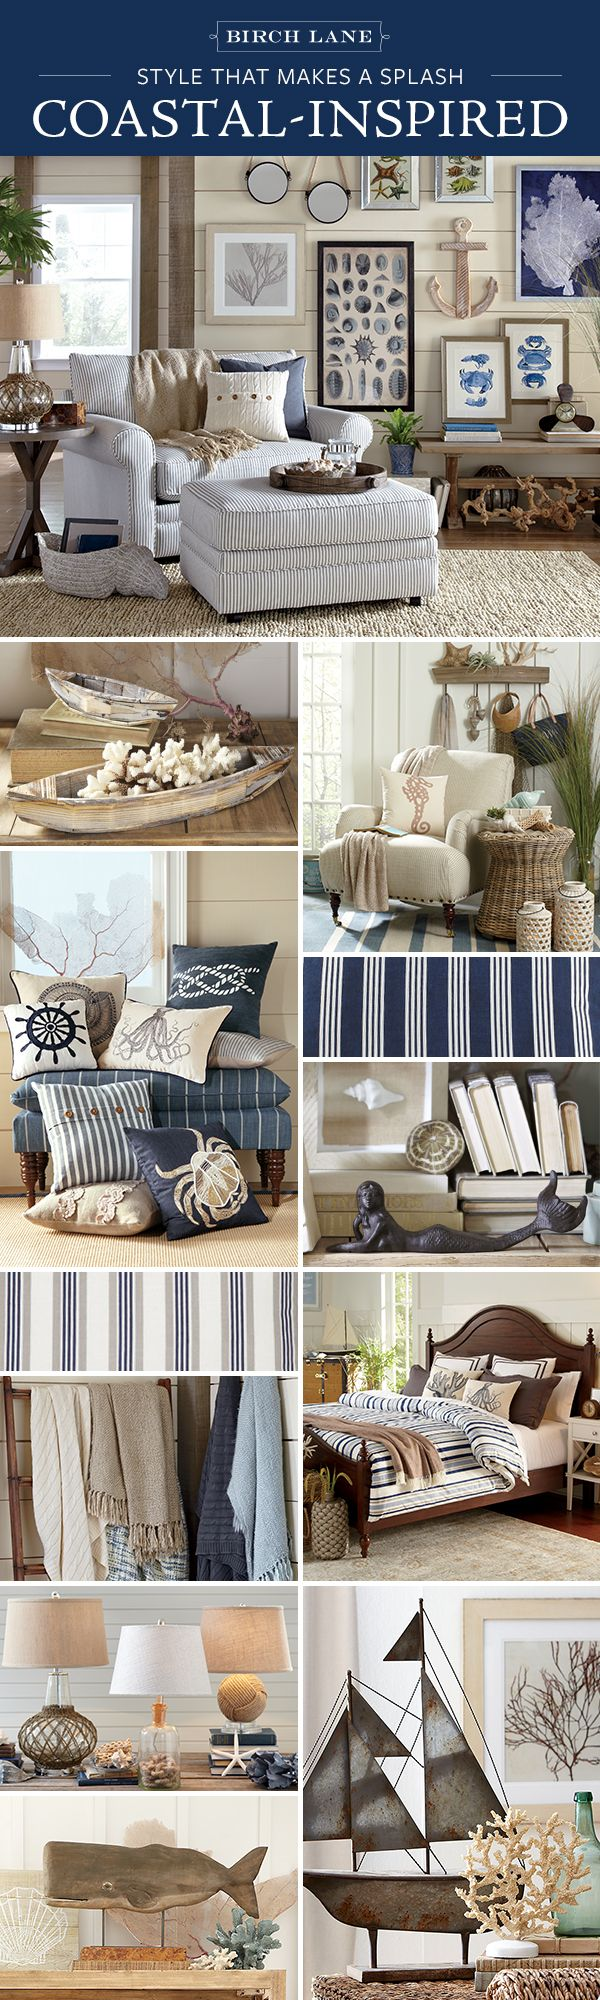 Whether You Live Steps From The Beach Or Miles From The Shore, The Coastal  Look Is Within Easy Reach. Birch Laneu0027s Assortment Of Furniture, Wall Art,  ...